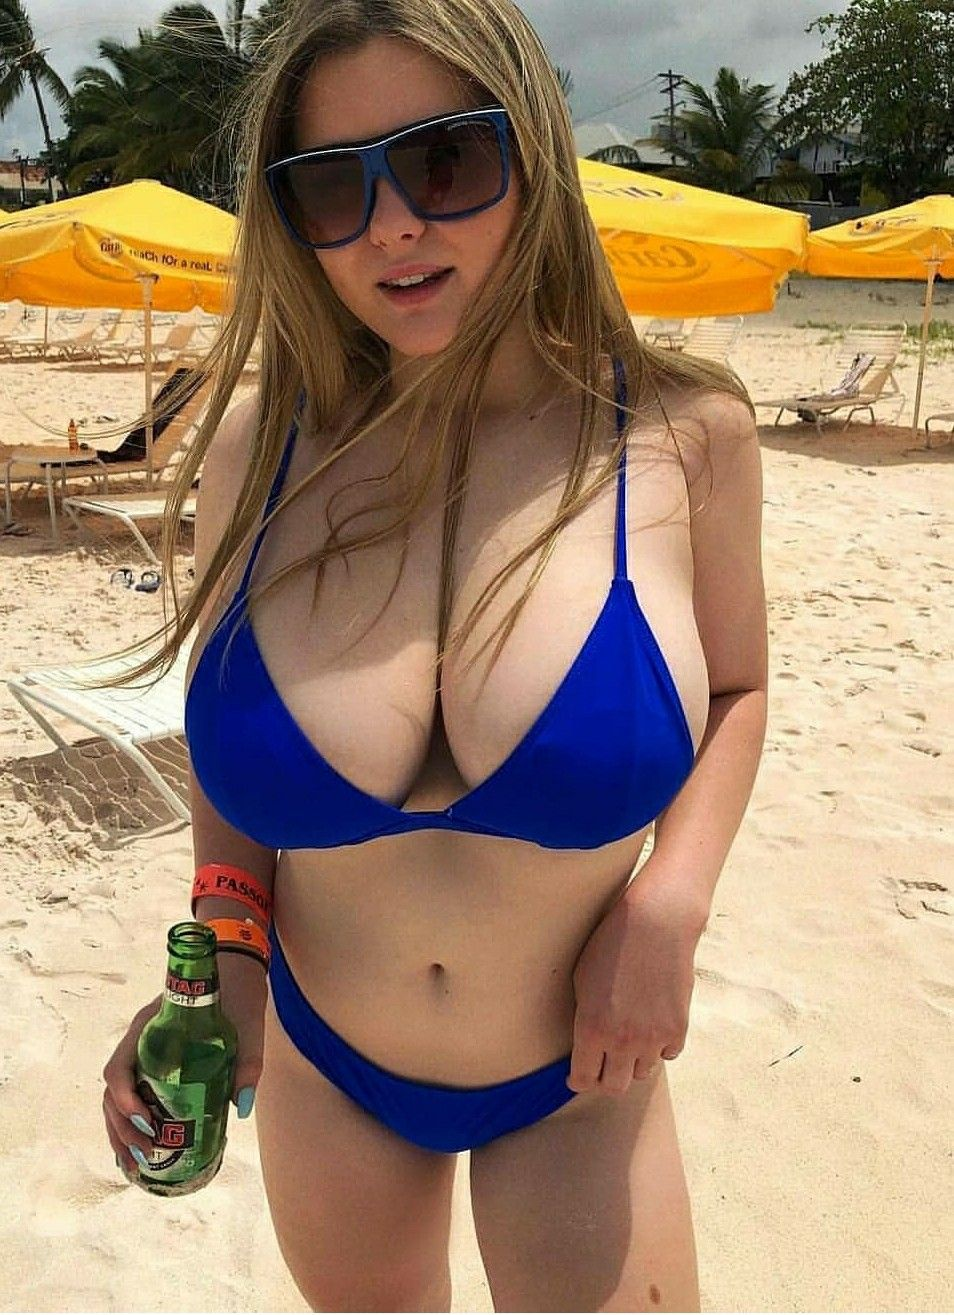 Extremely large boobs beach bikini babes